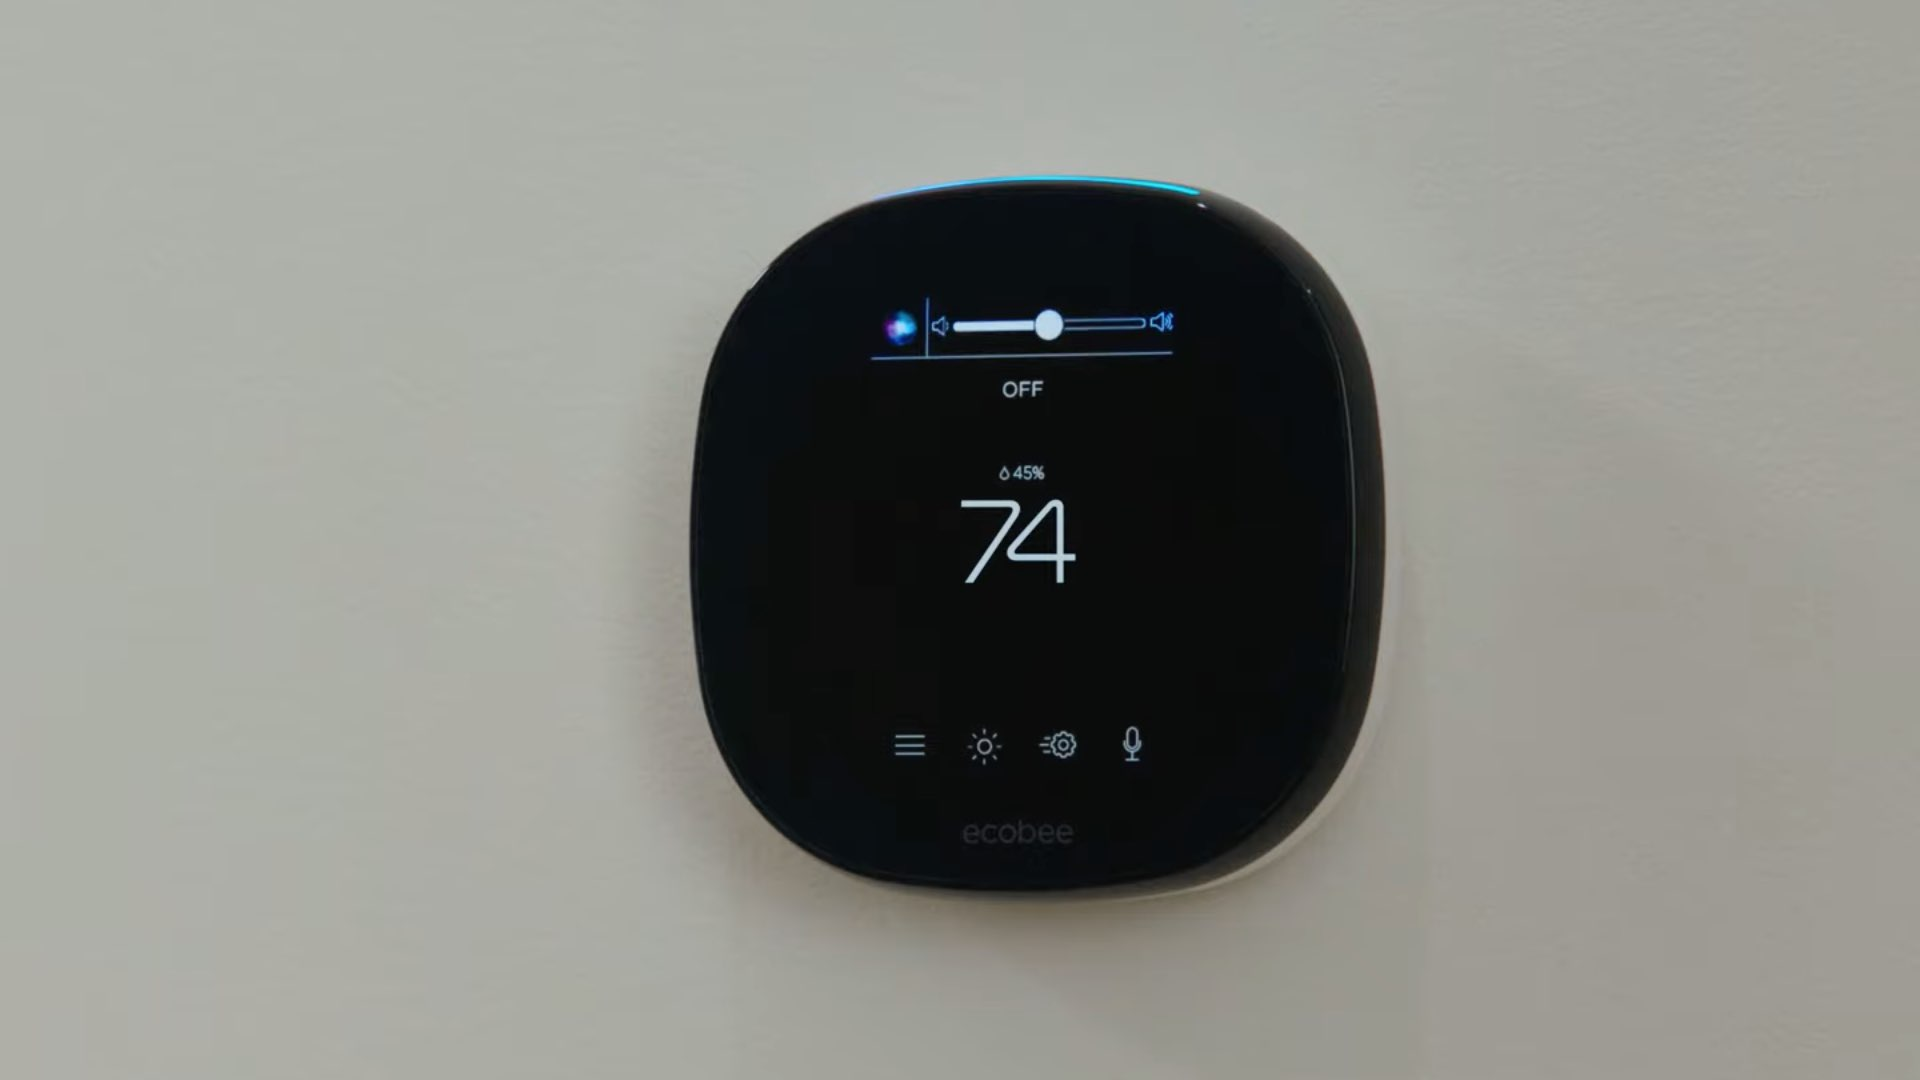 An image showing Ecobee Smart thermostat with Hey Siri orb shown on its display